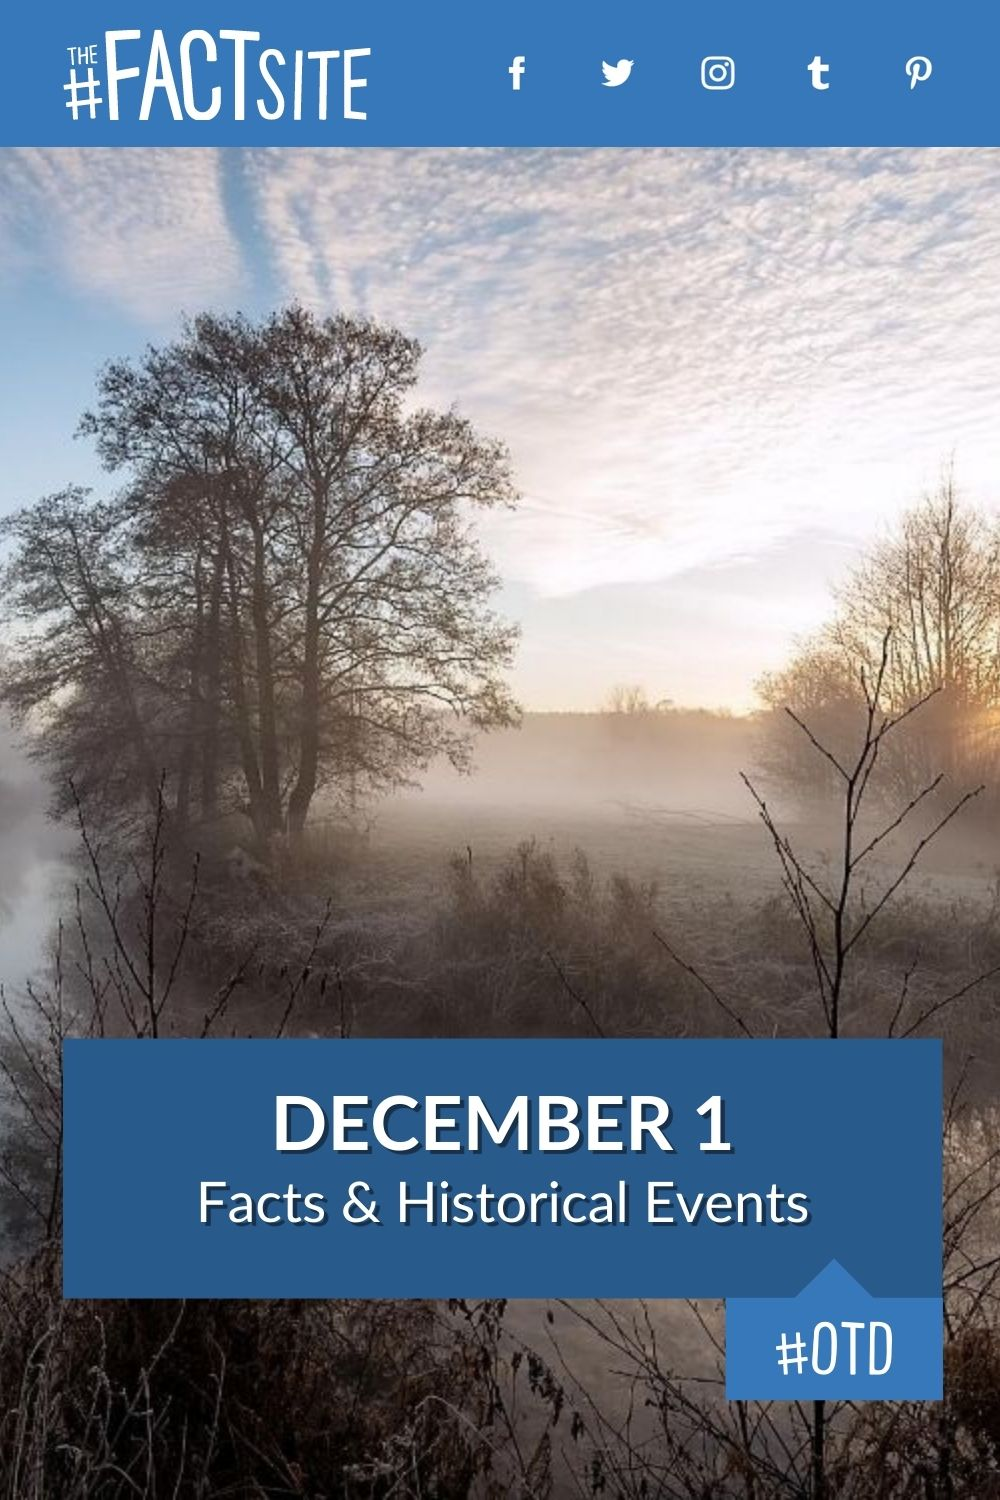 Facts & Historic Events That Happened on December 1